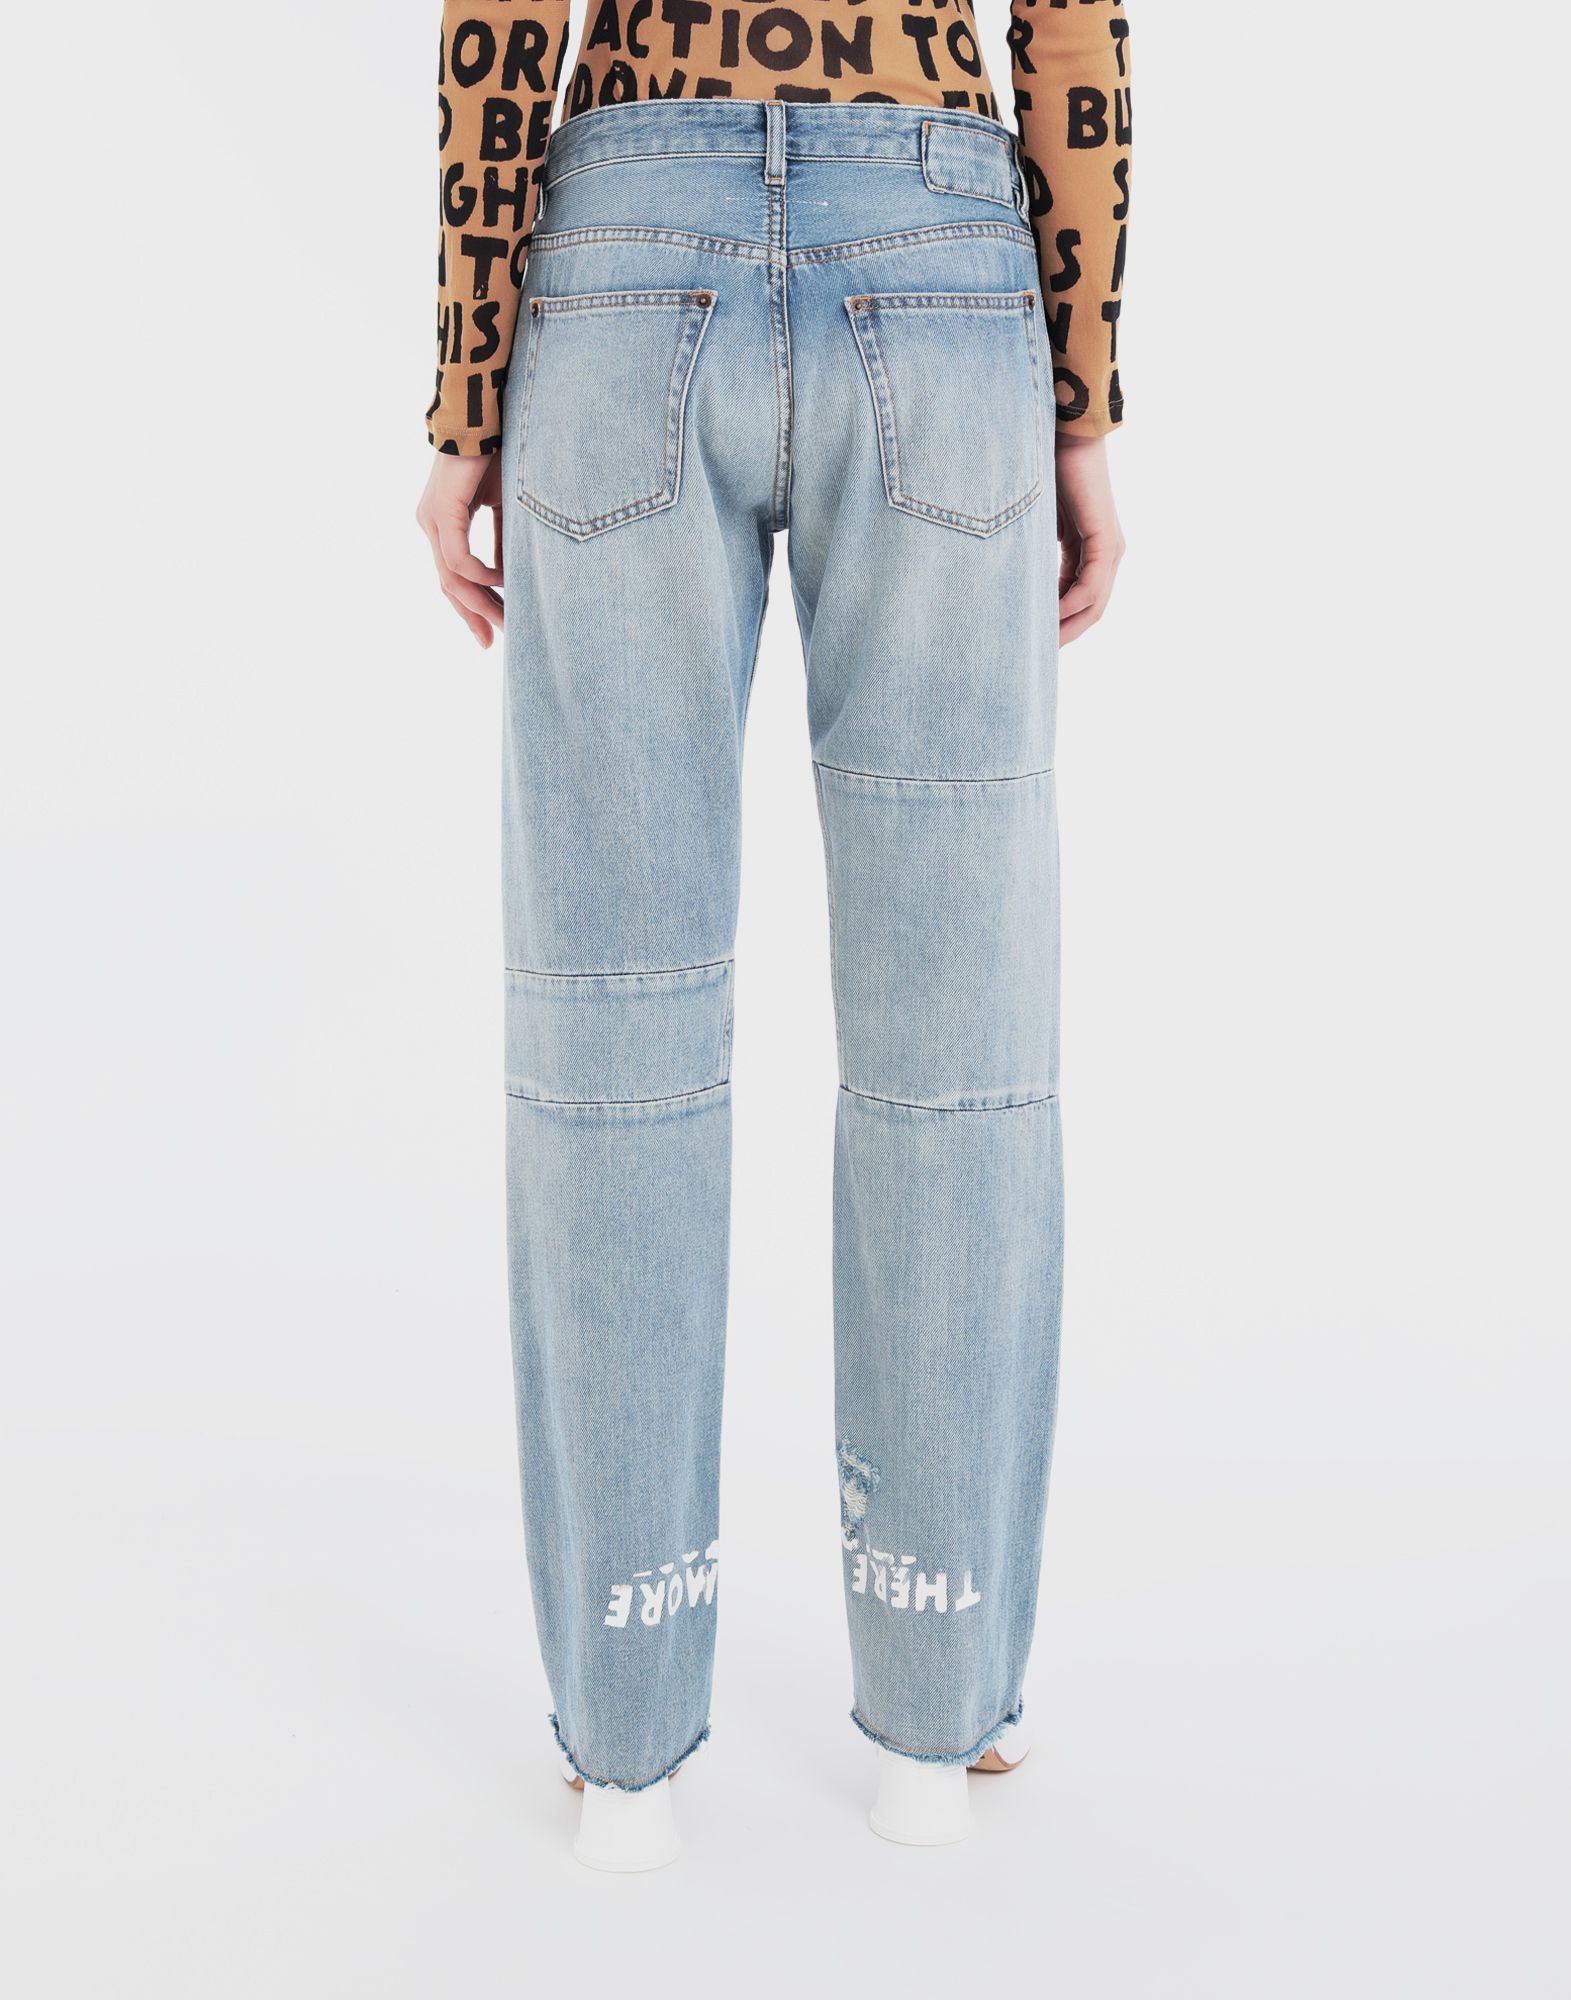 MM6 MAISON MARGIELA Charity AIDS-print denim pants Jeans Woman e